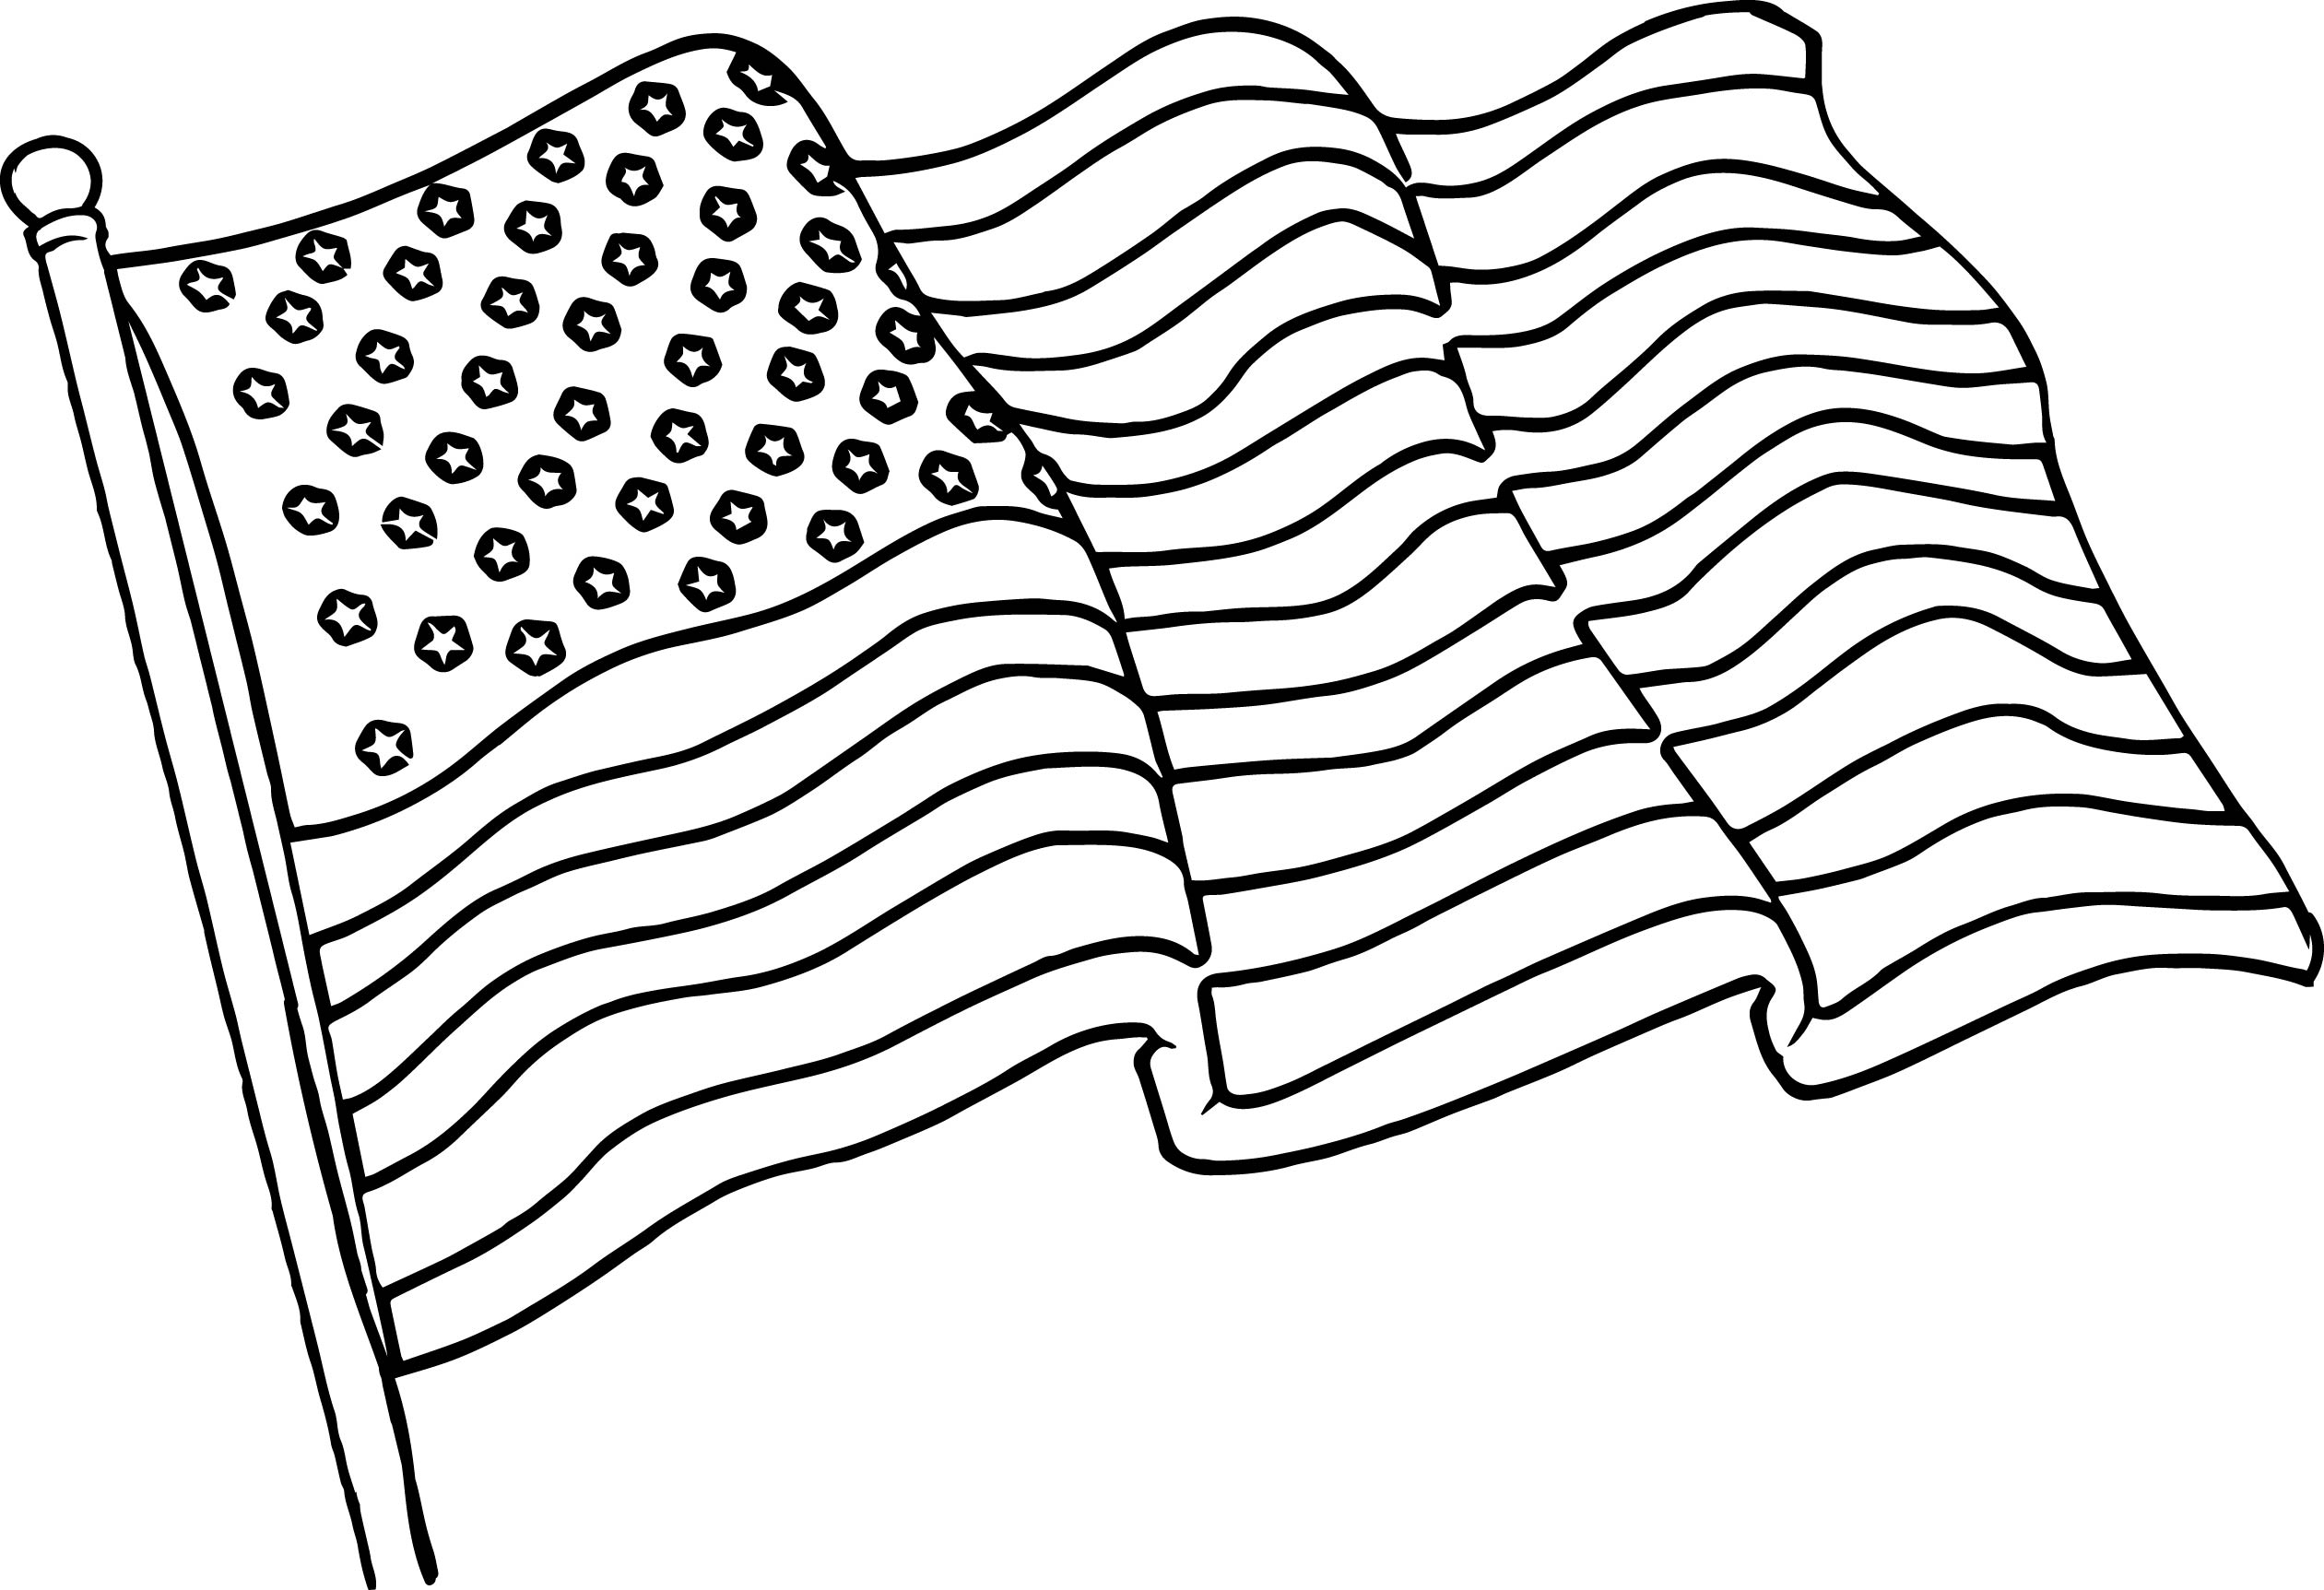 the american flag coloring page american flag coloring page for the love of the country american the page flag coloring